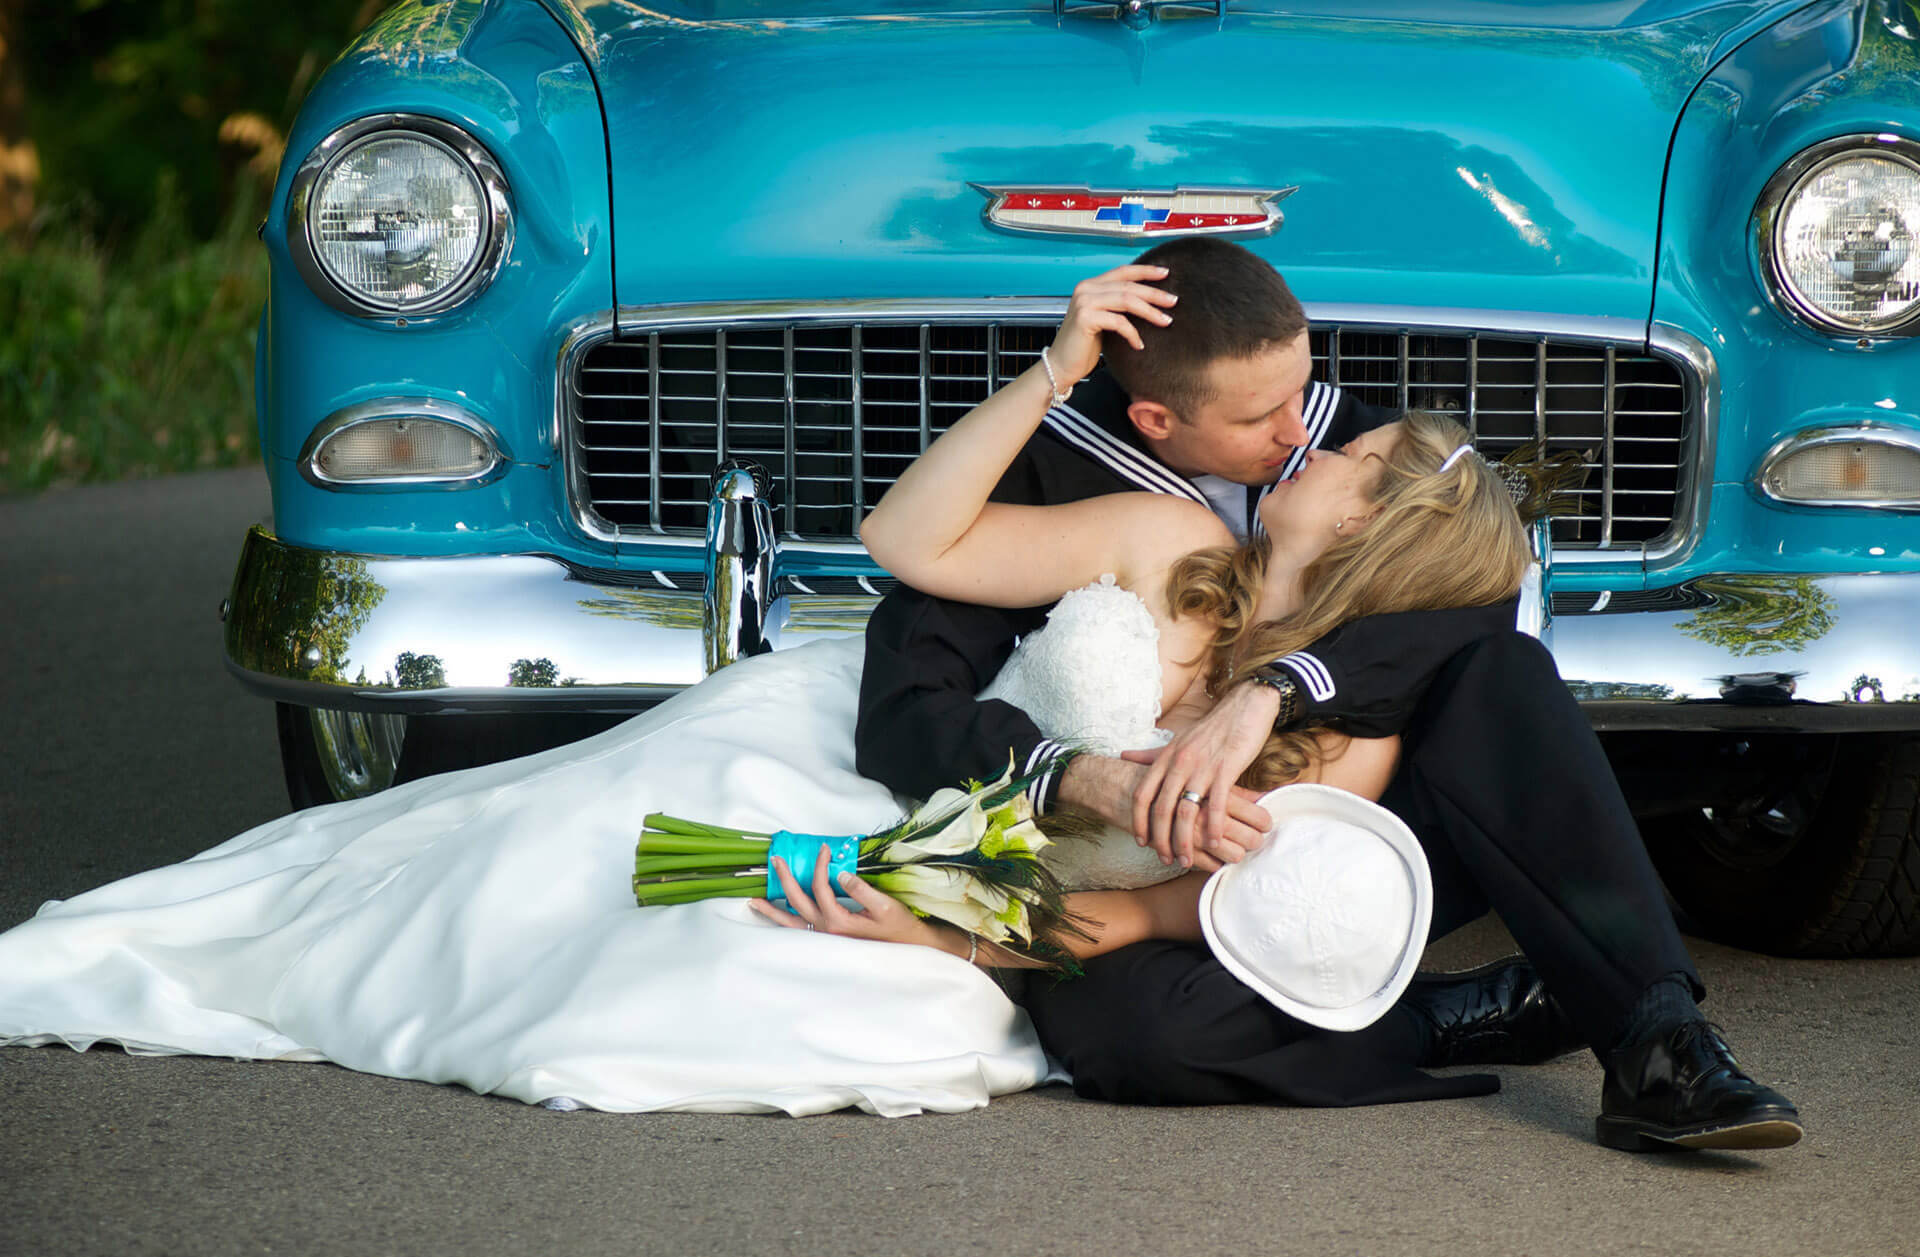 michigan wedding photographer takes romantic photos of michigan couple in front of an antique car in Ann Arbor.